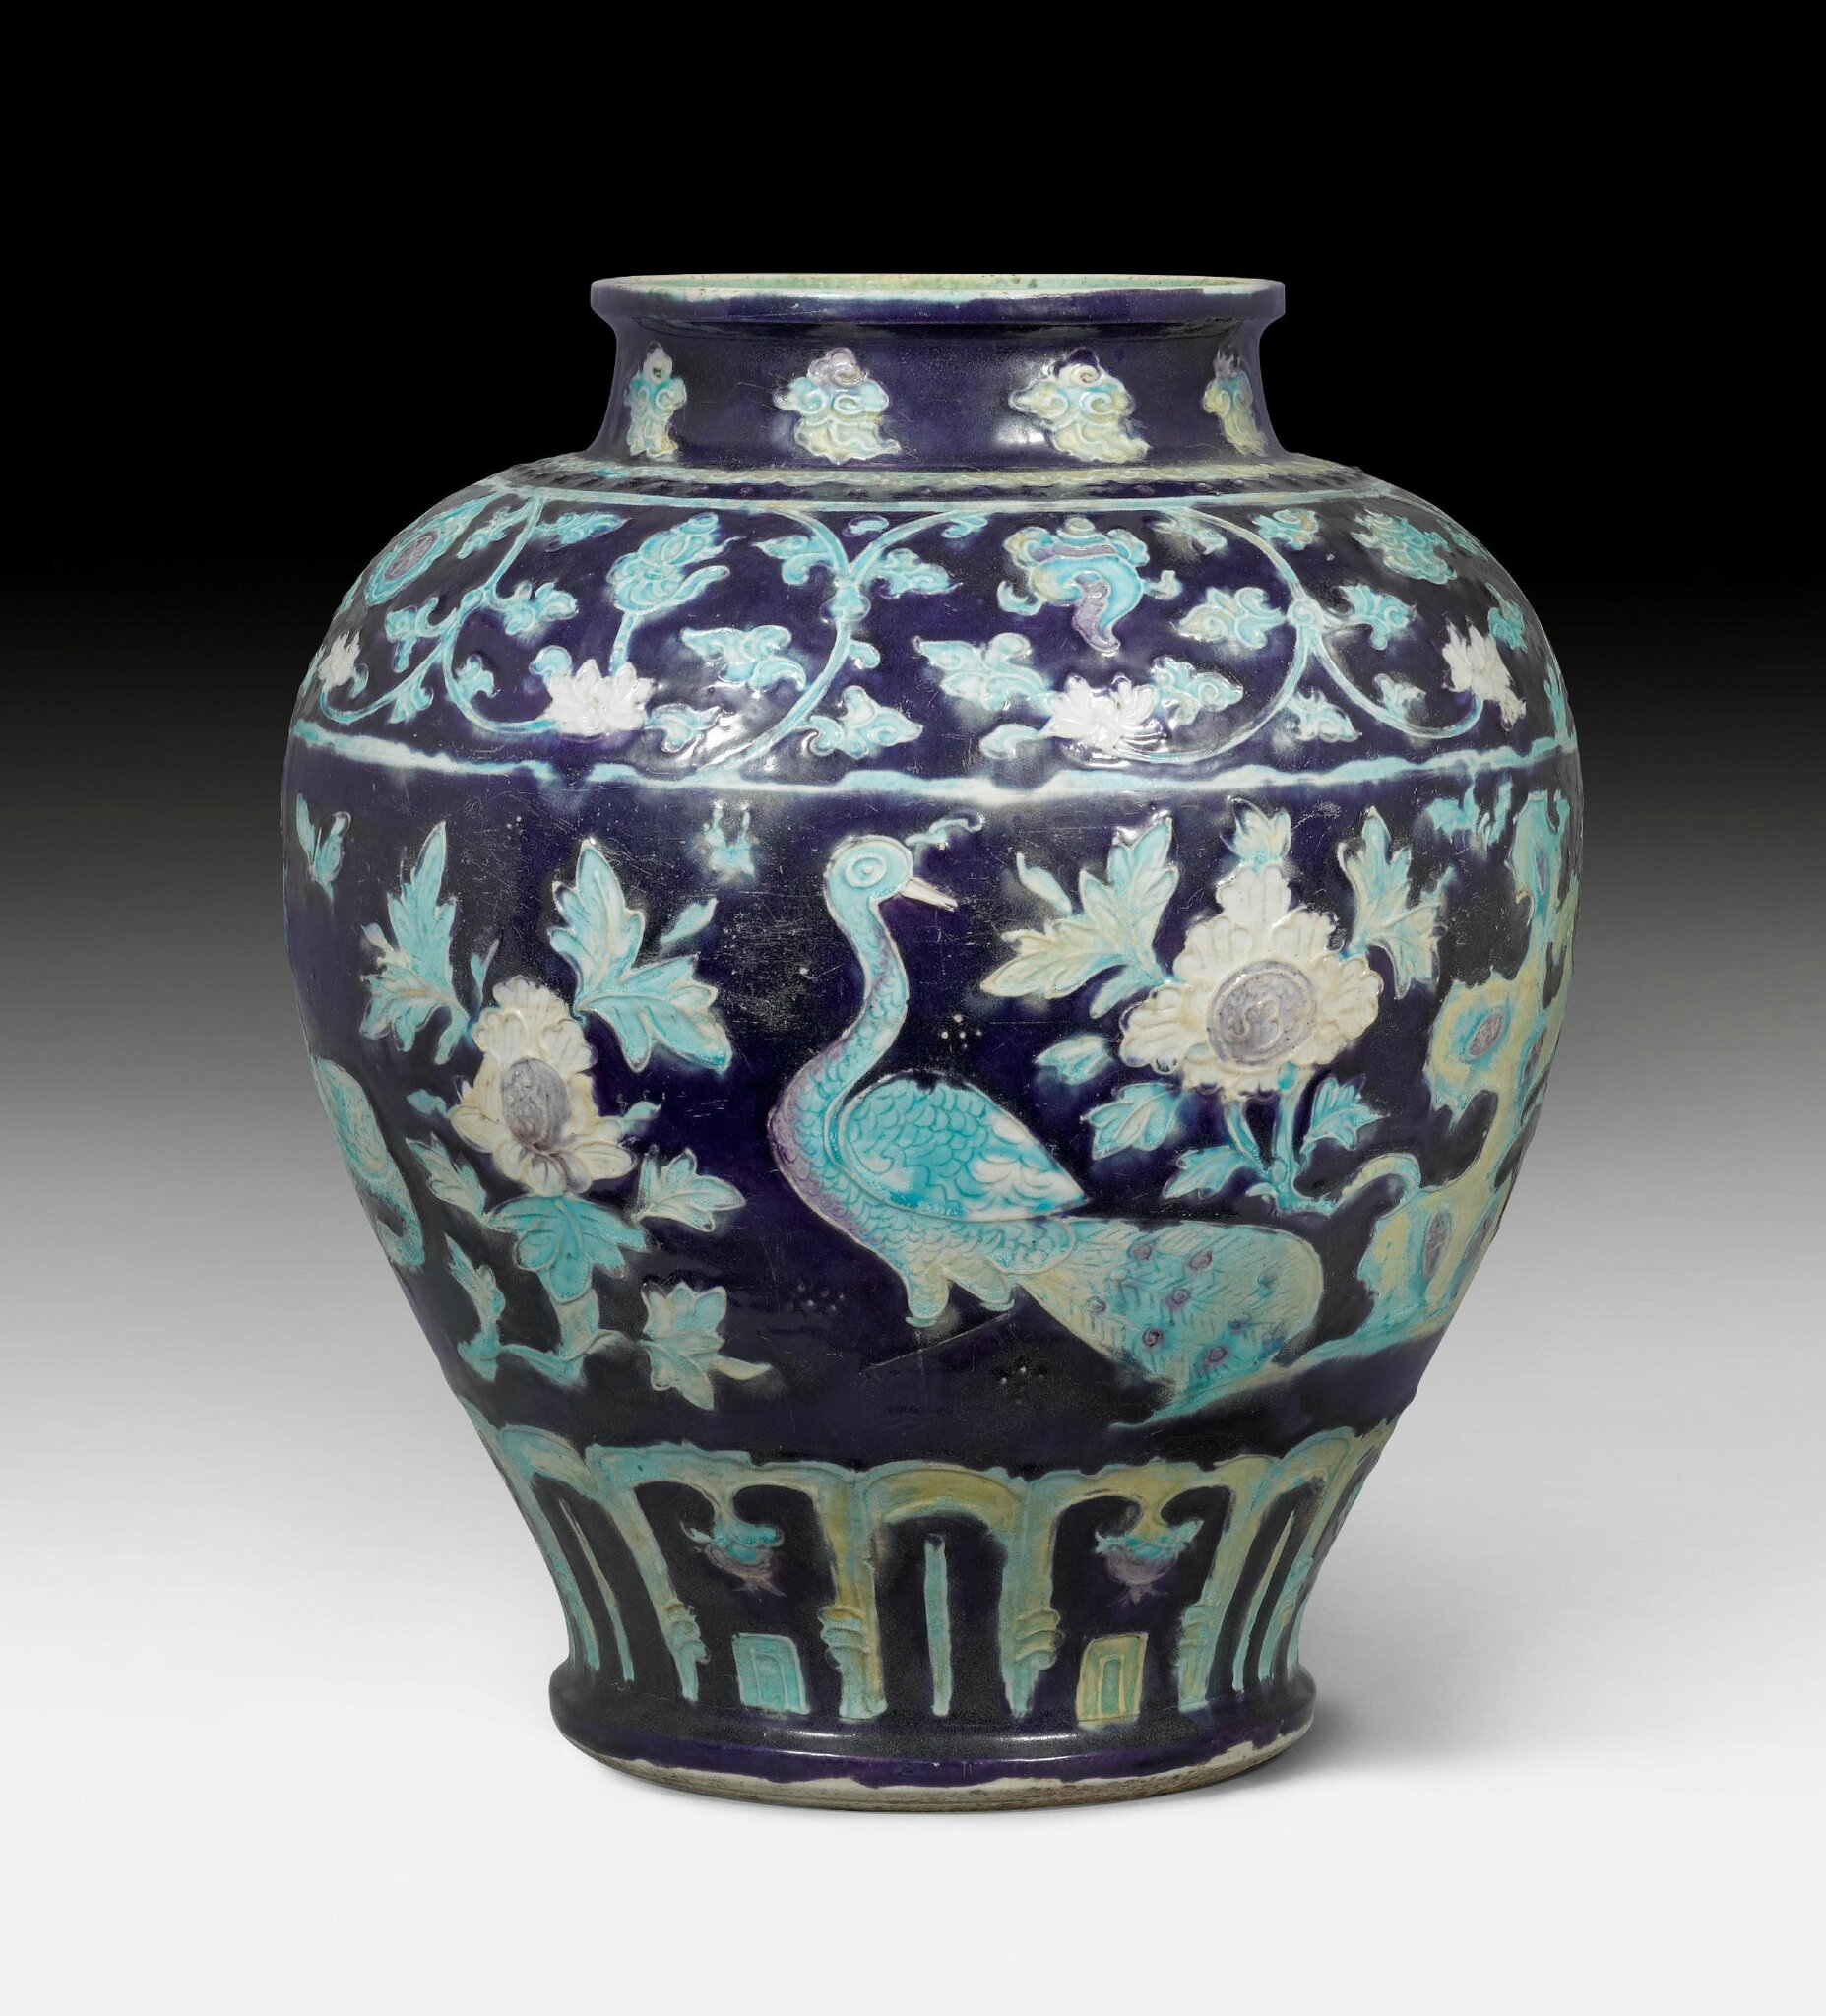 A magnificent Fahua jar, China, Ming dynasty